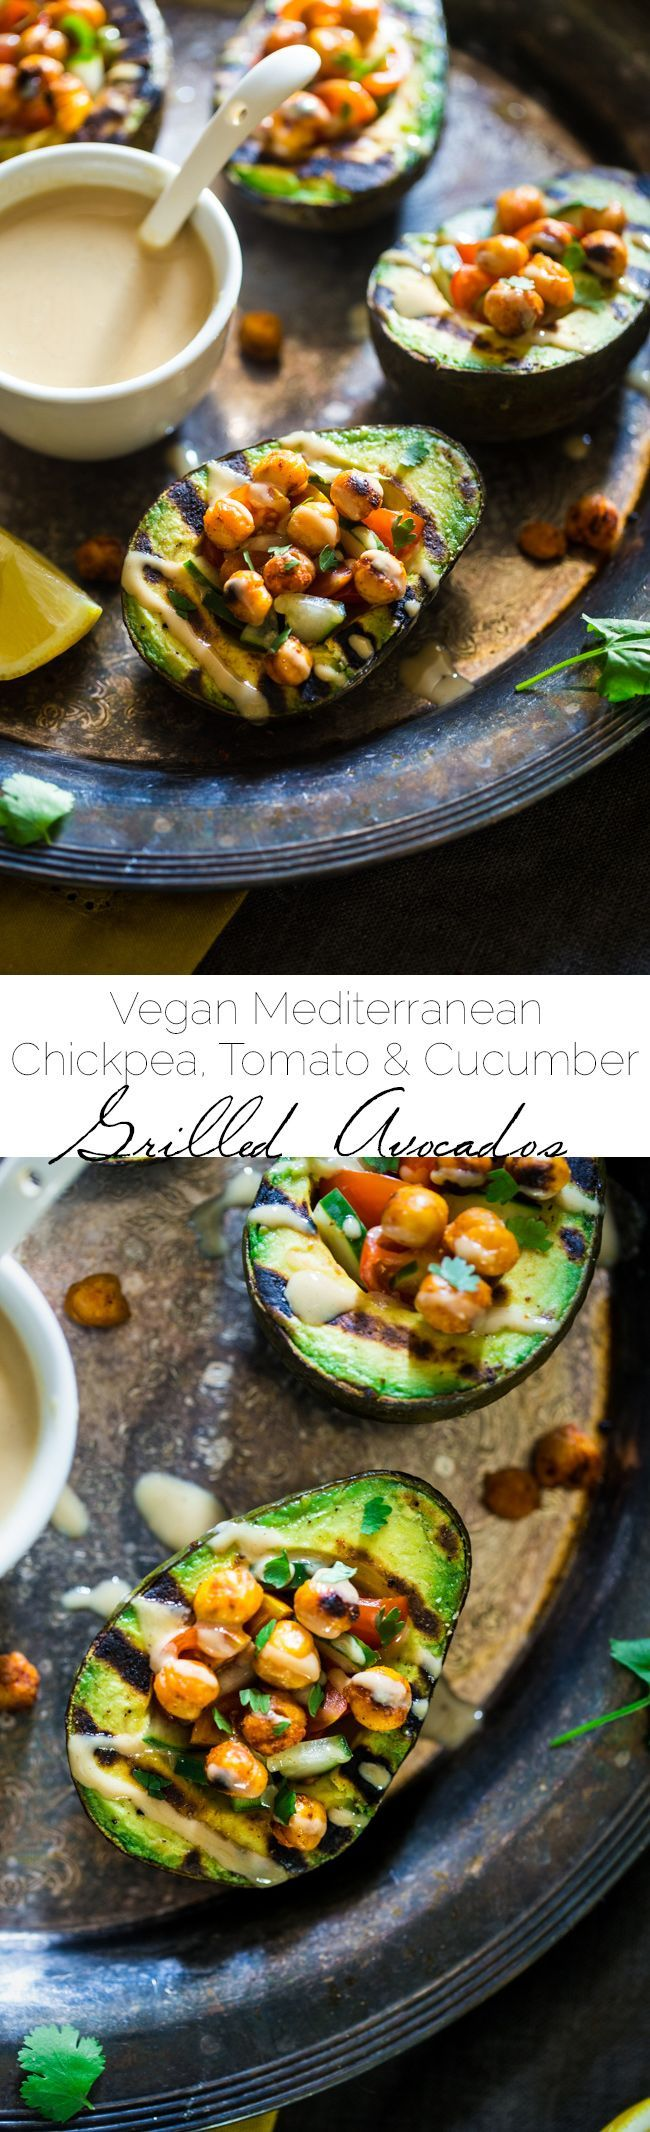 Vegan Mediterranean Chickpea Stuffed Grilled Avocado - Grilled avocado is stuffed with fresh cucumber, tomato and crispy grilled chickpeas! A drizzle of tahini makes this a delicious, healthy and easy, vegan dinner for under 250 calories! | Foodfaithfitness.com | @FoodFaithFit